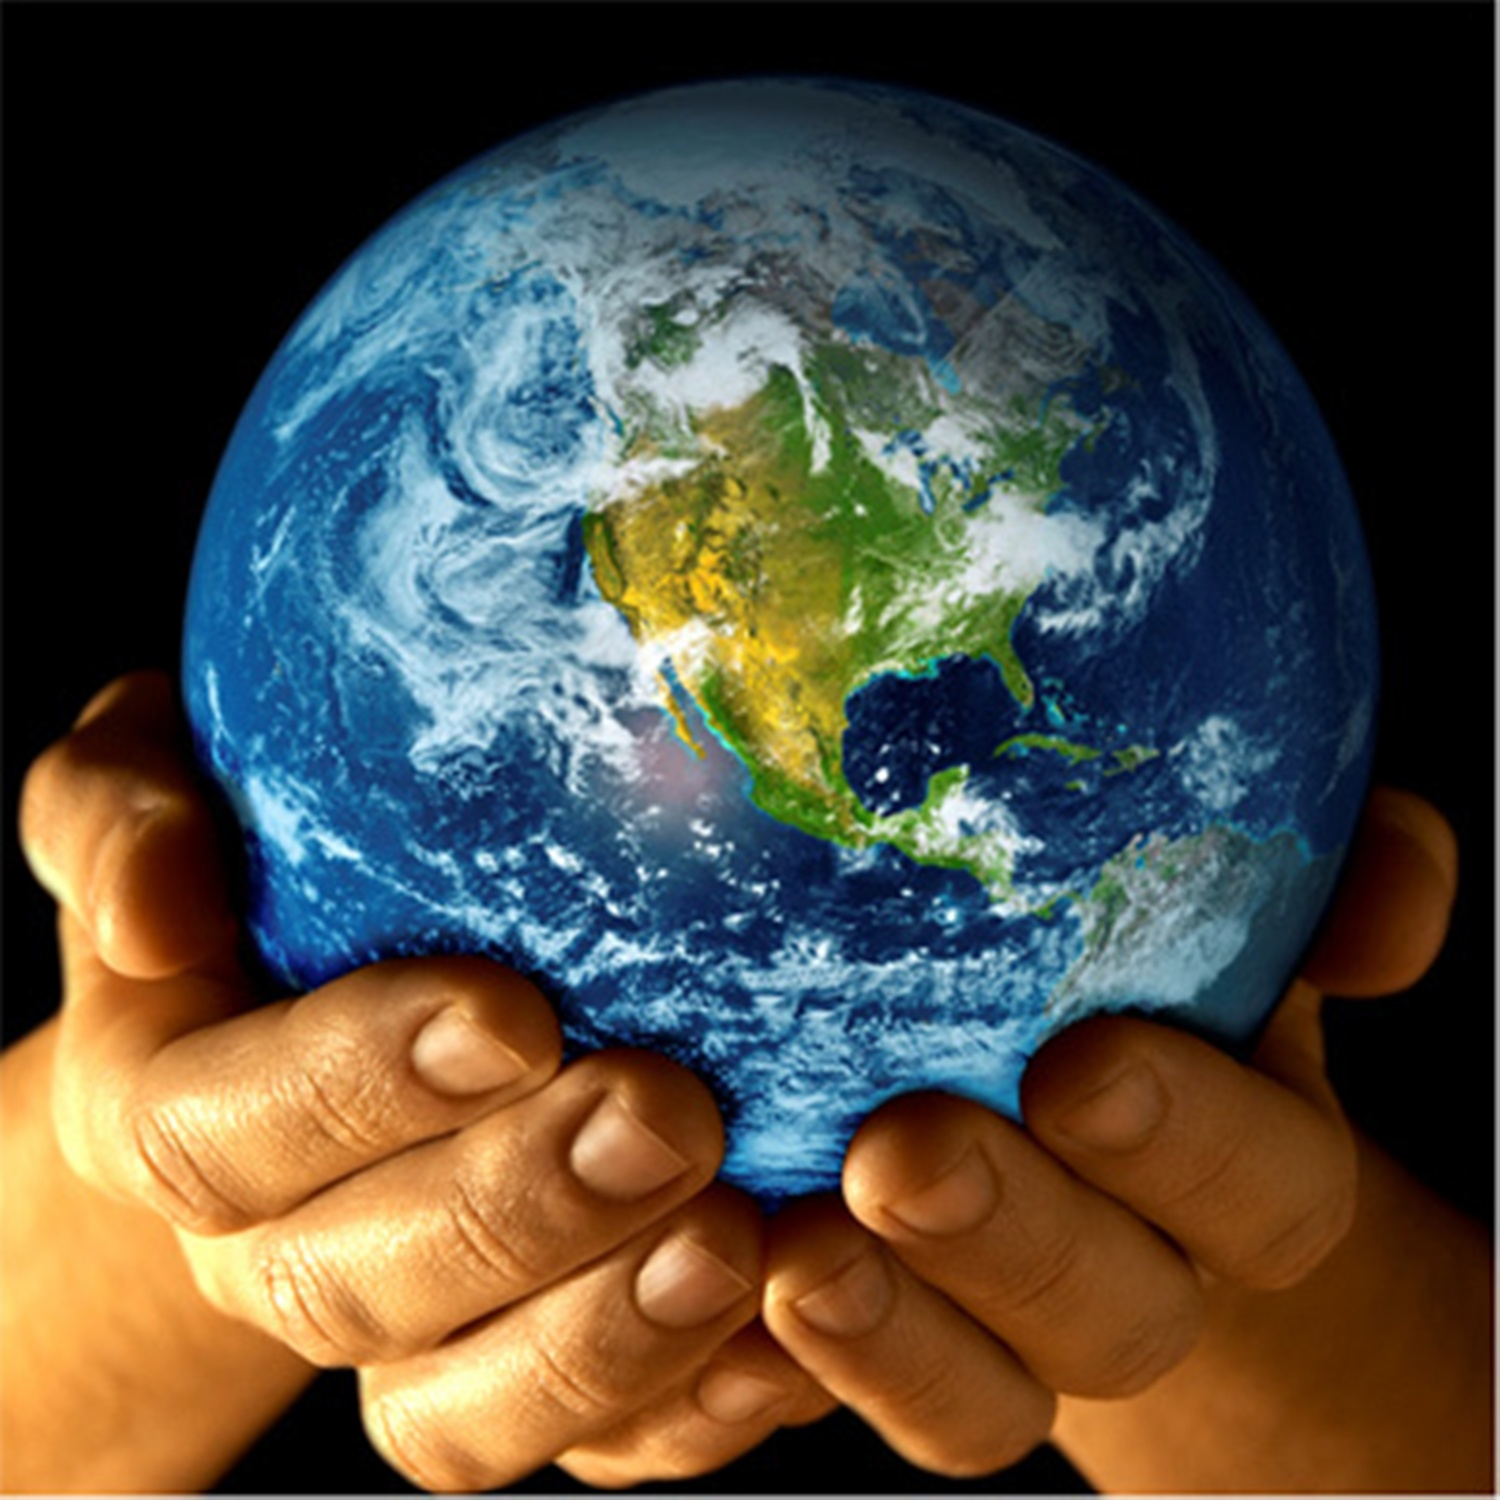 earth in hand 2